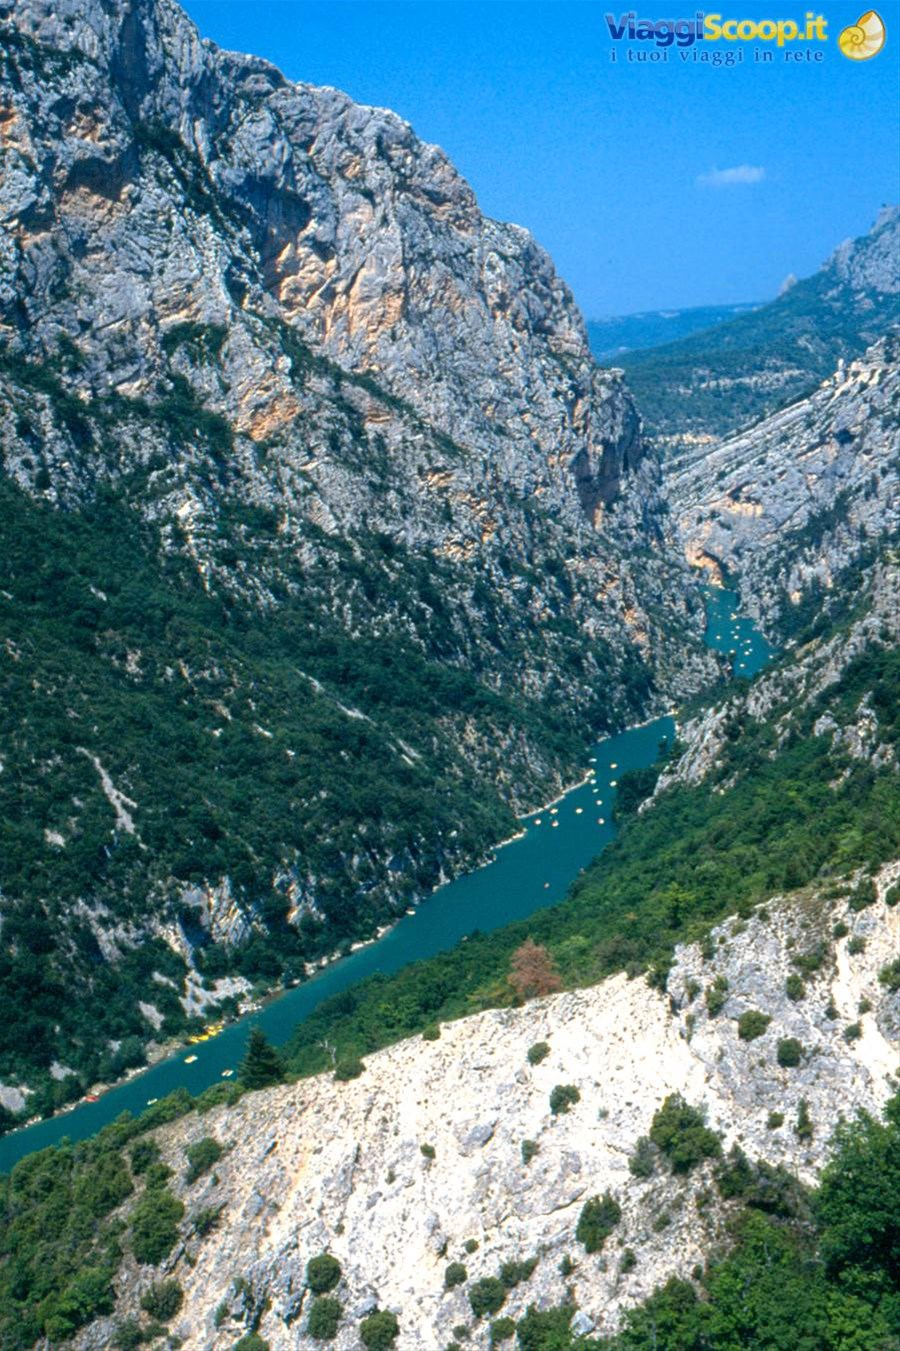 Grand Canyon du Verdon FRANCIA